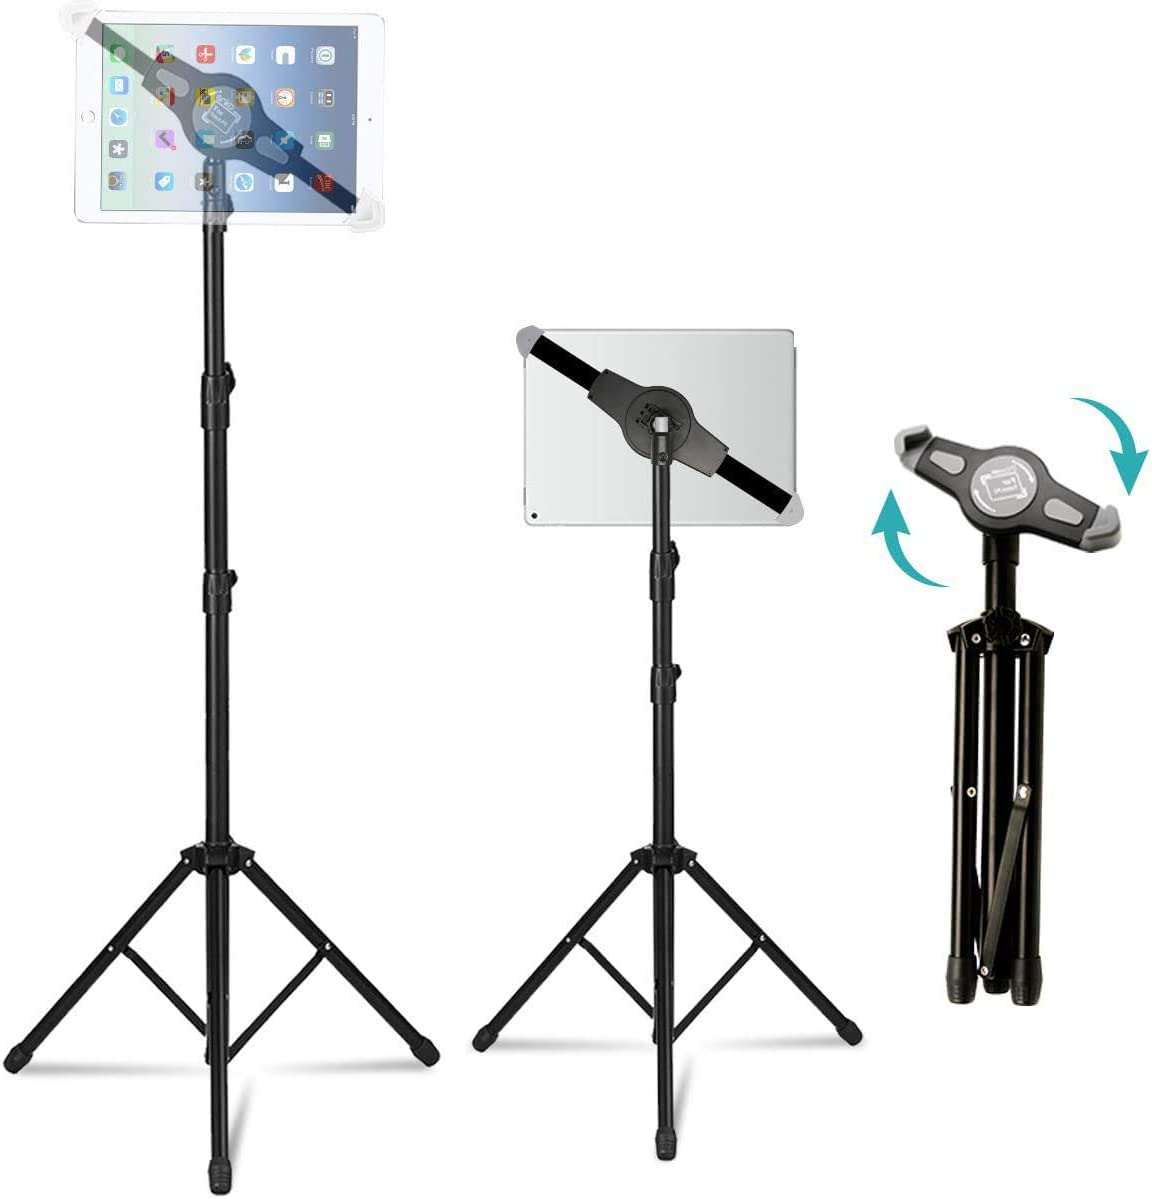 """Ipad Tripod Stand, Vstyle Height Adjustable 20 to 60 Inch Tablet Tripod Mount For Ipad Pro 12.9""""/11"""", Ipad Air 10.5"""", Ipad 9.7'' and More 9.5"""" to 14.5"""" Tablet"""